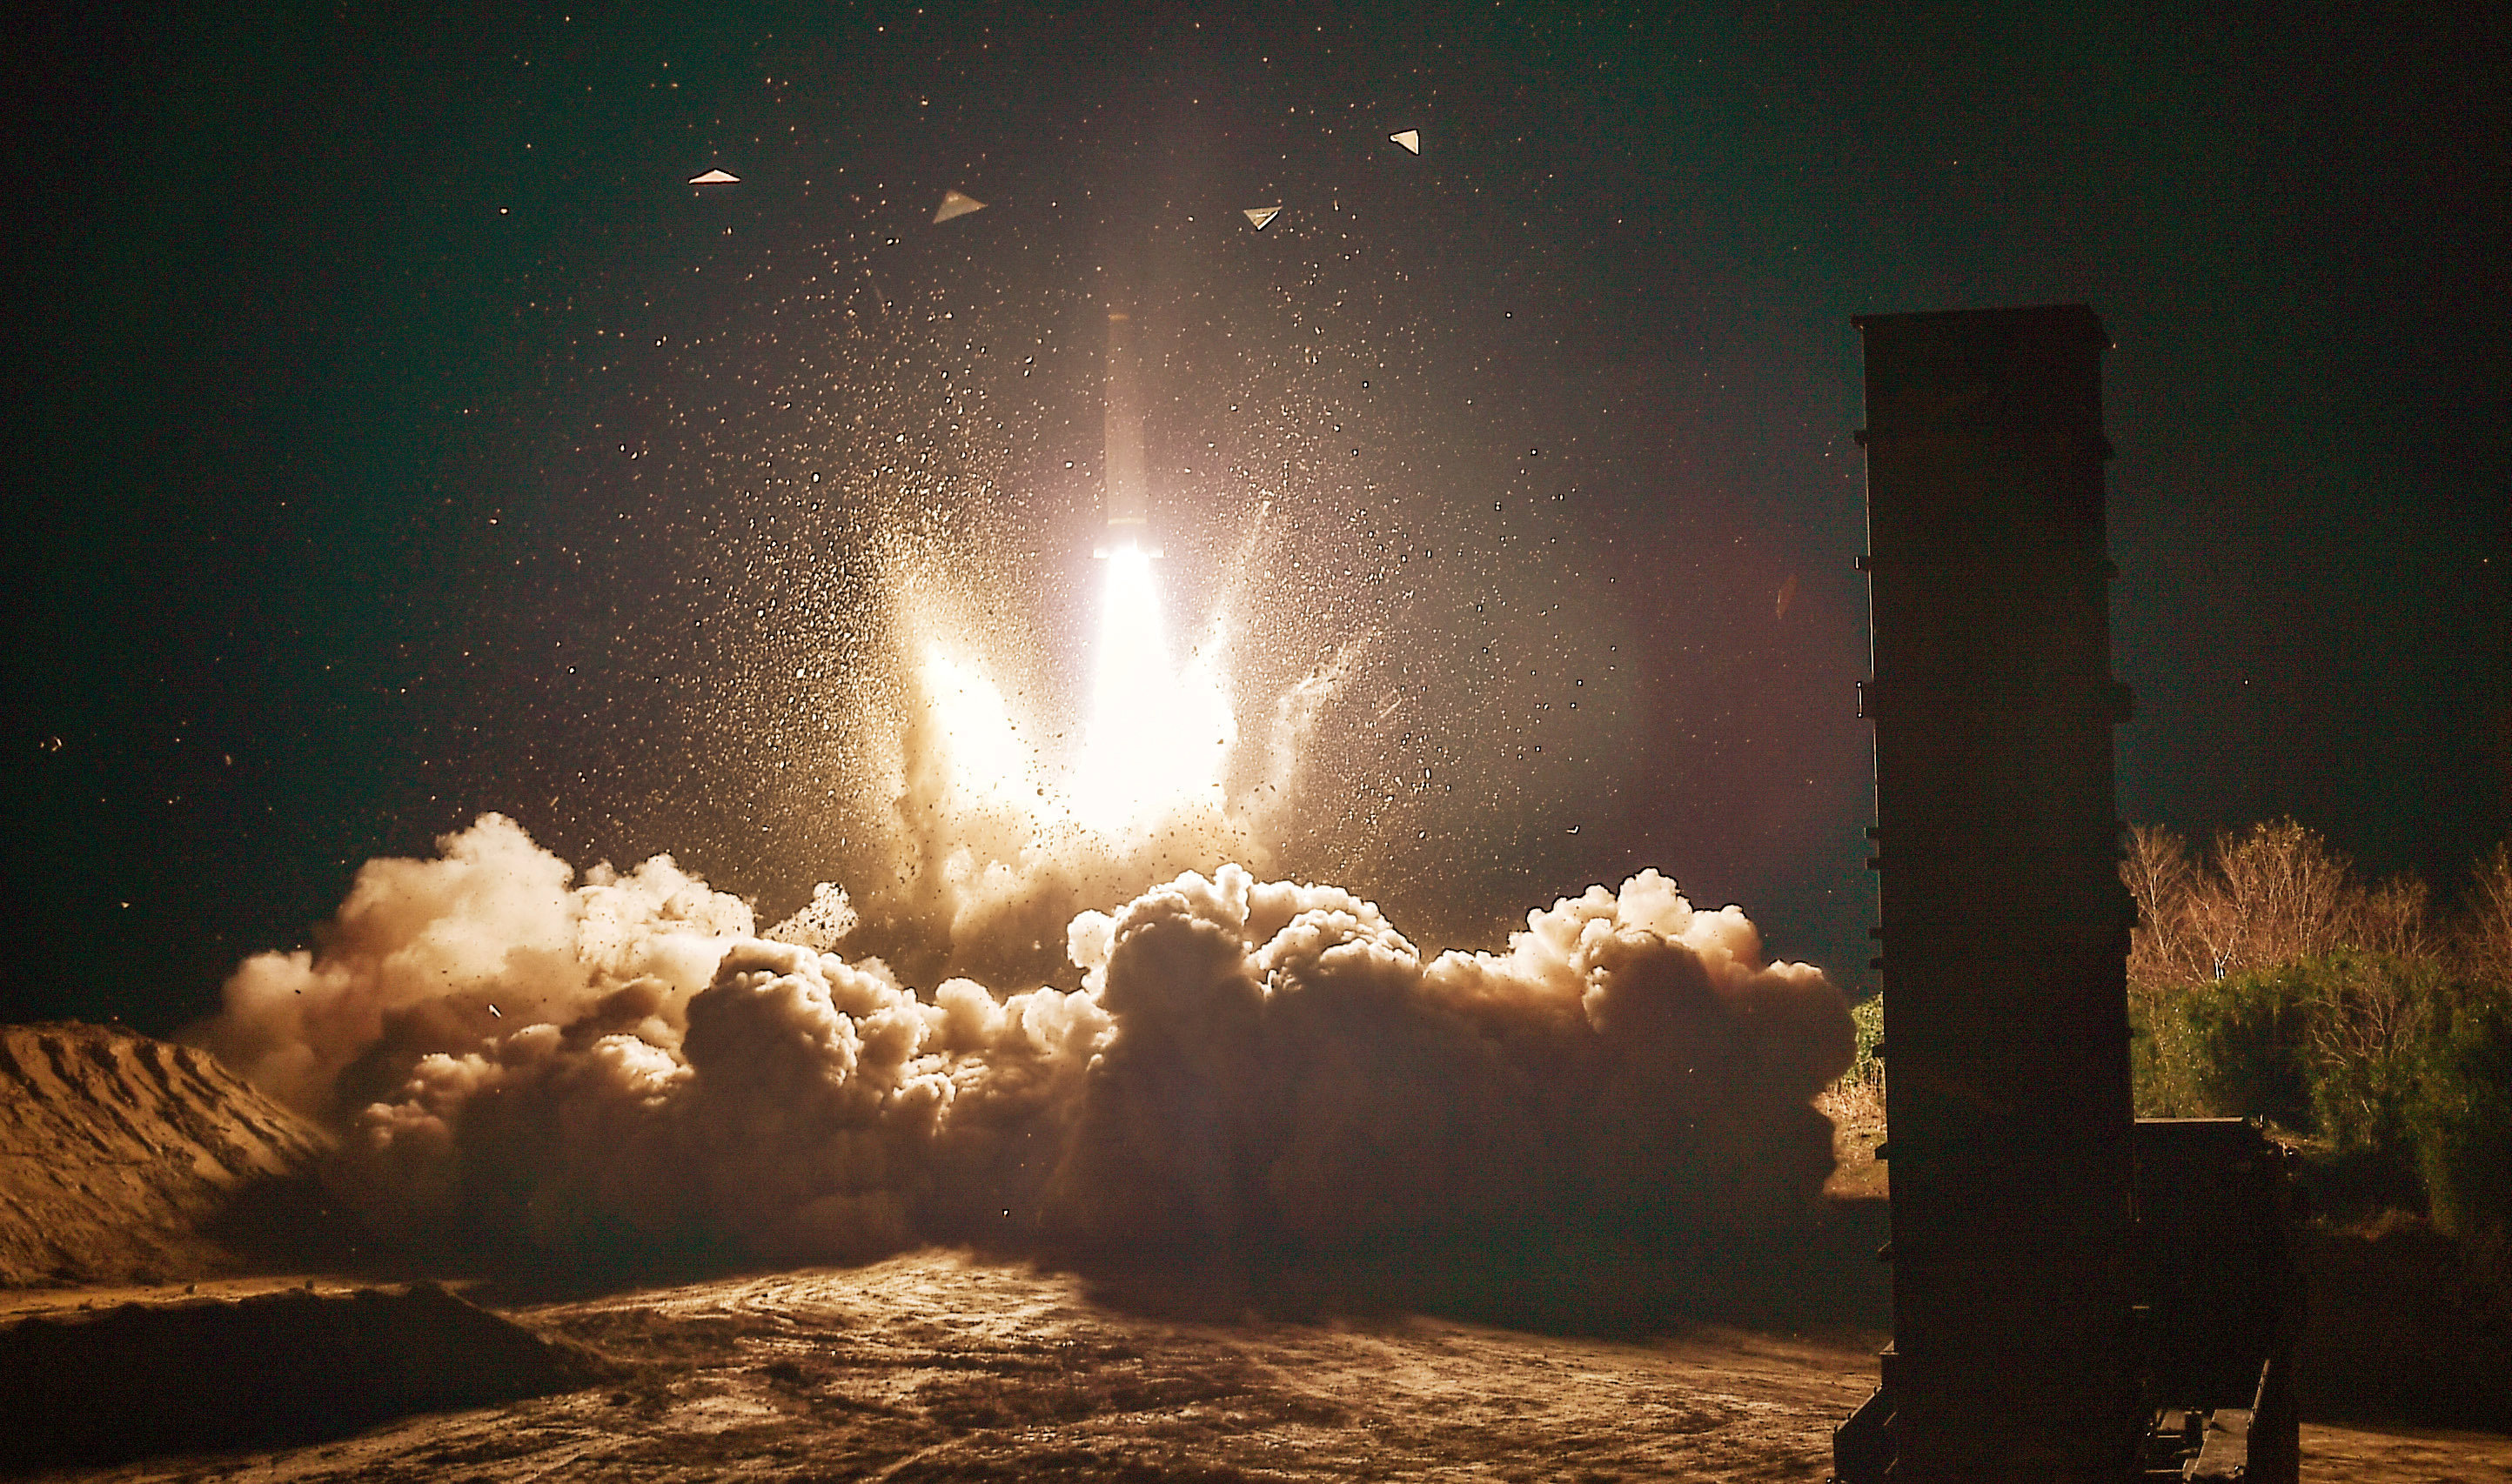 South Korea's Hyunmoo II missile is fired during an exercise at an undefined location in the east coast of South Korea, November 29, 2017